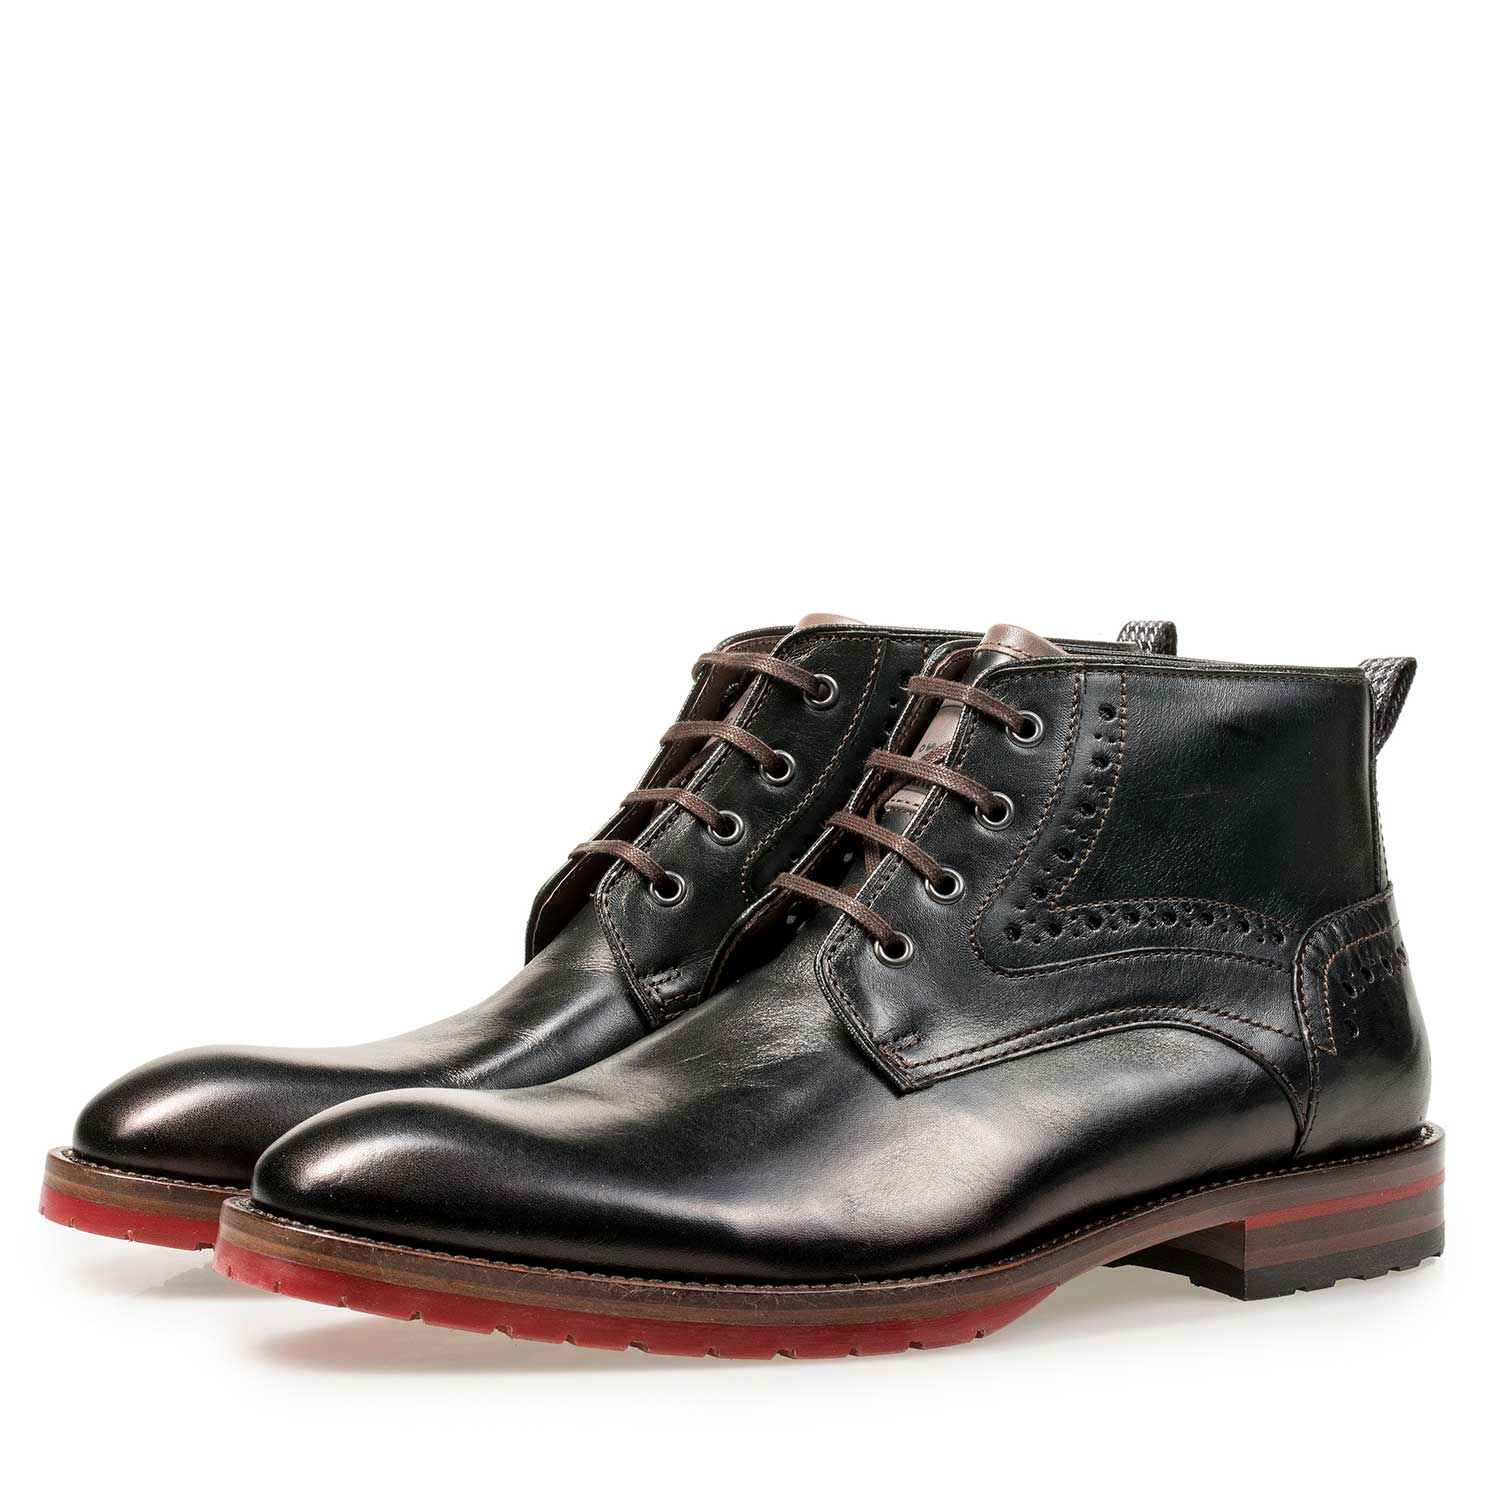 10317/10 - Black calf leather lace boot with red sole